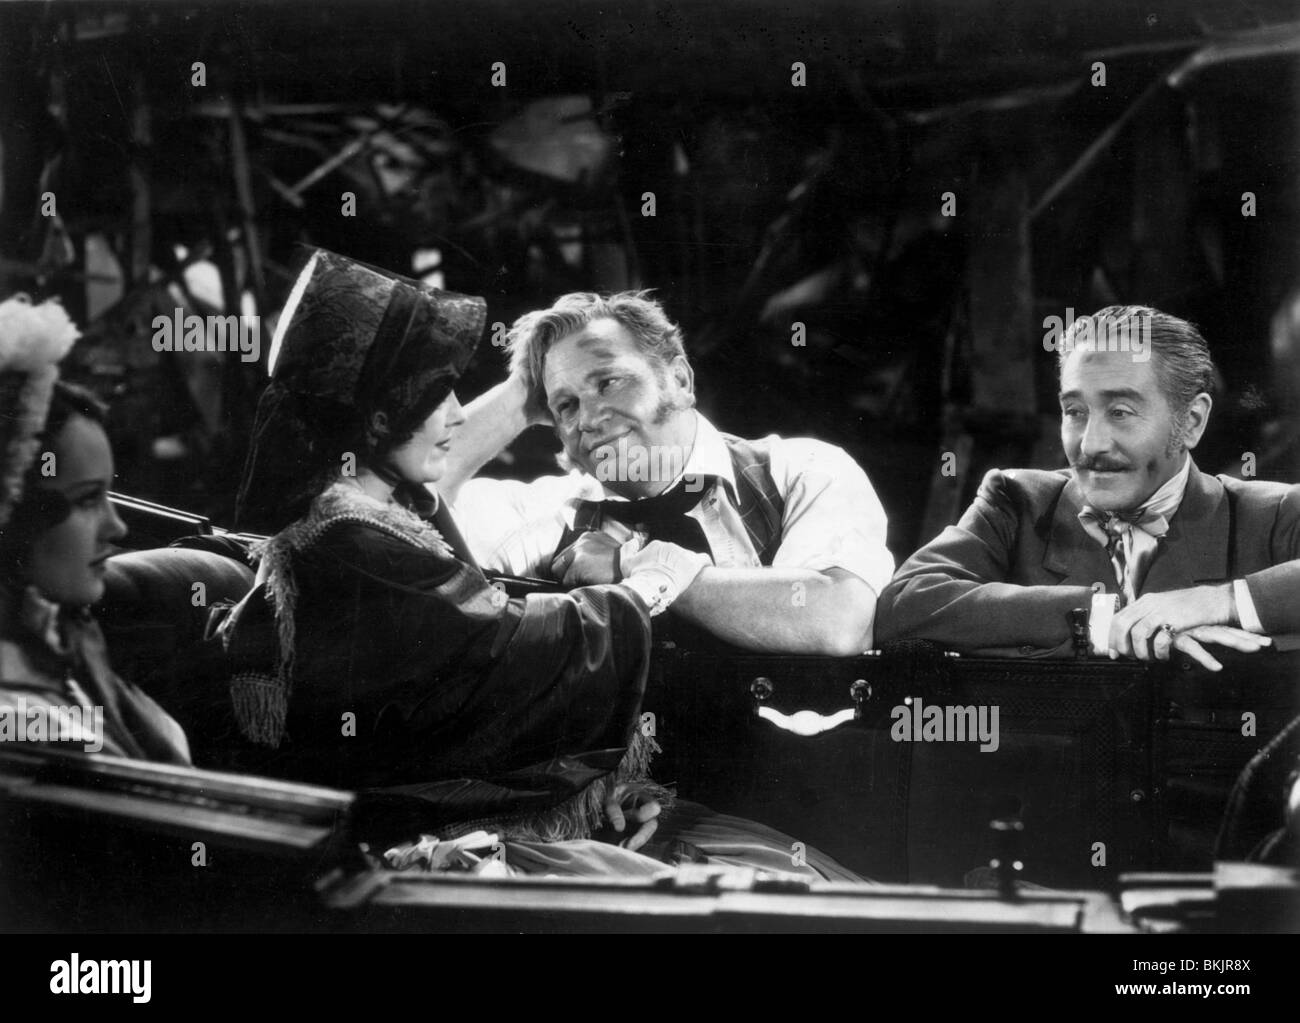 MIGHTY BARNUM (1934) WALLACE BEERY, ADOLPHE MENJOU MGBR 004P - Stock Image